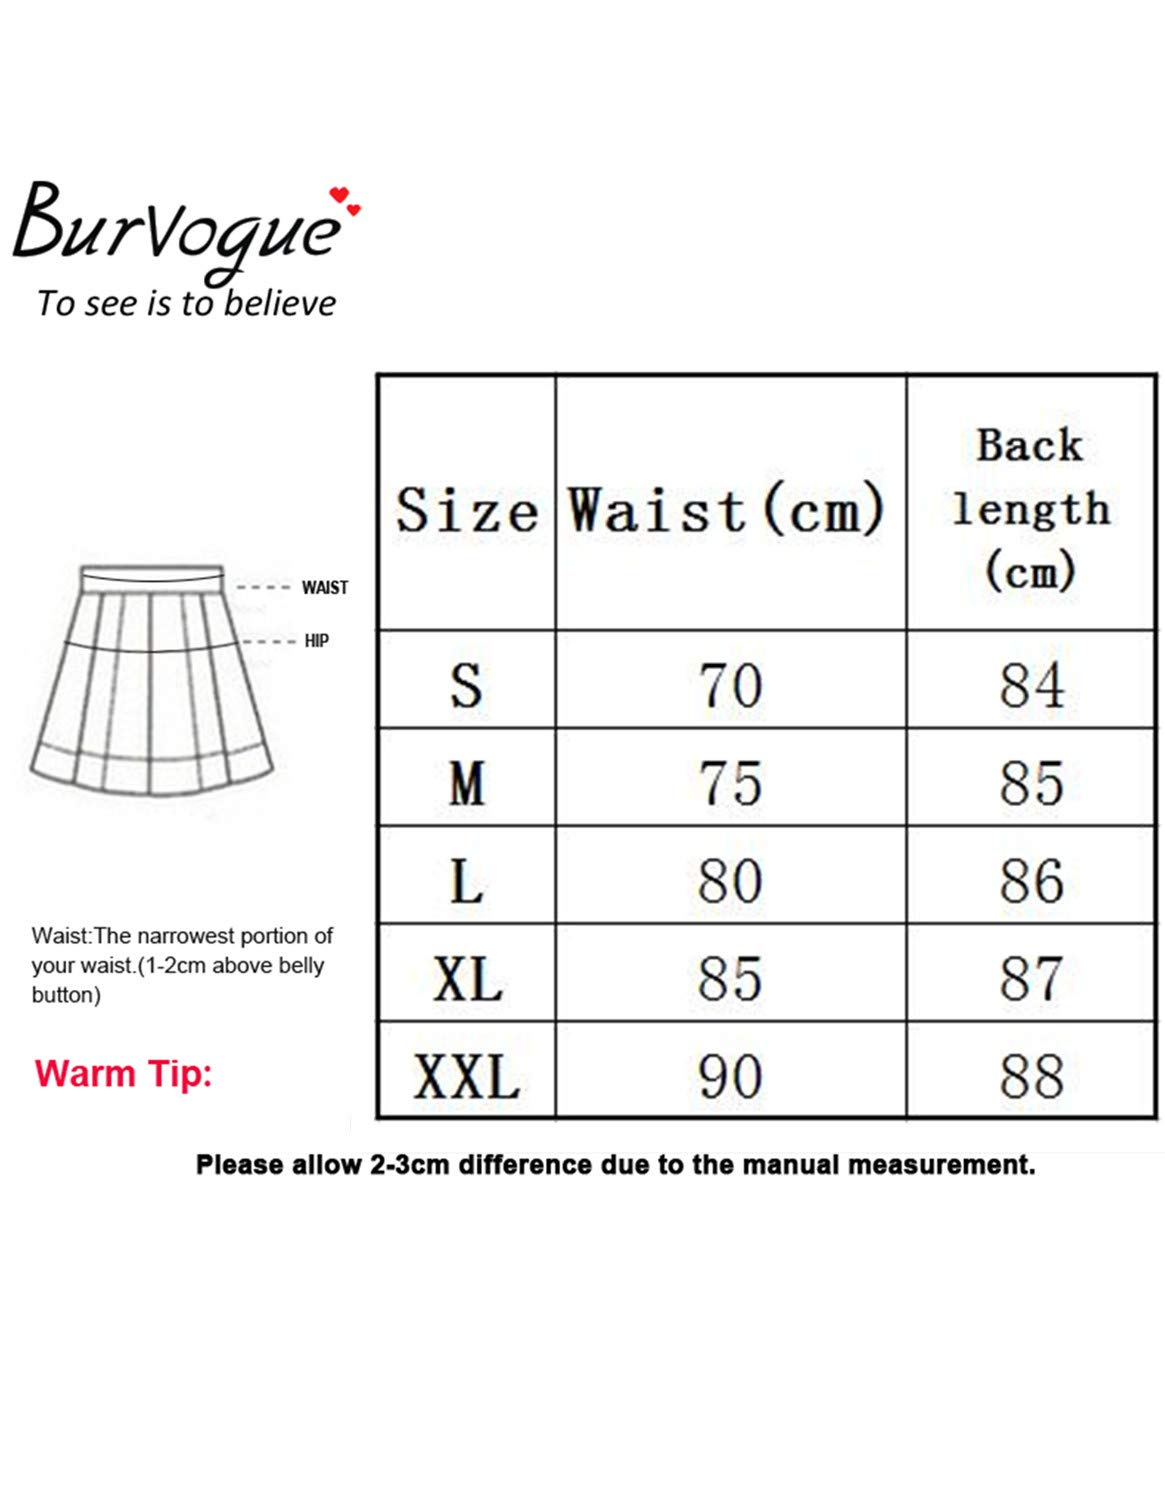 Burvogue Steampunk Skirt,Women Multi Layered Gothic High Low Skirt Vintage Outfits 5